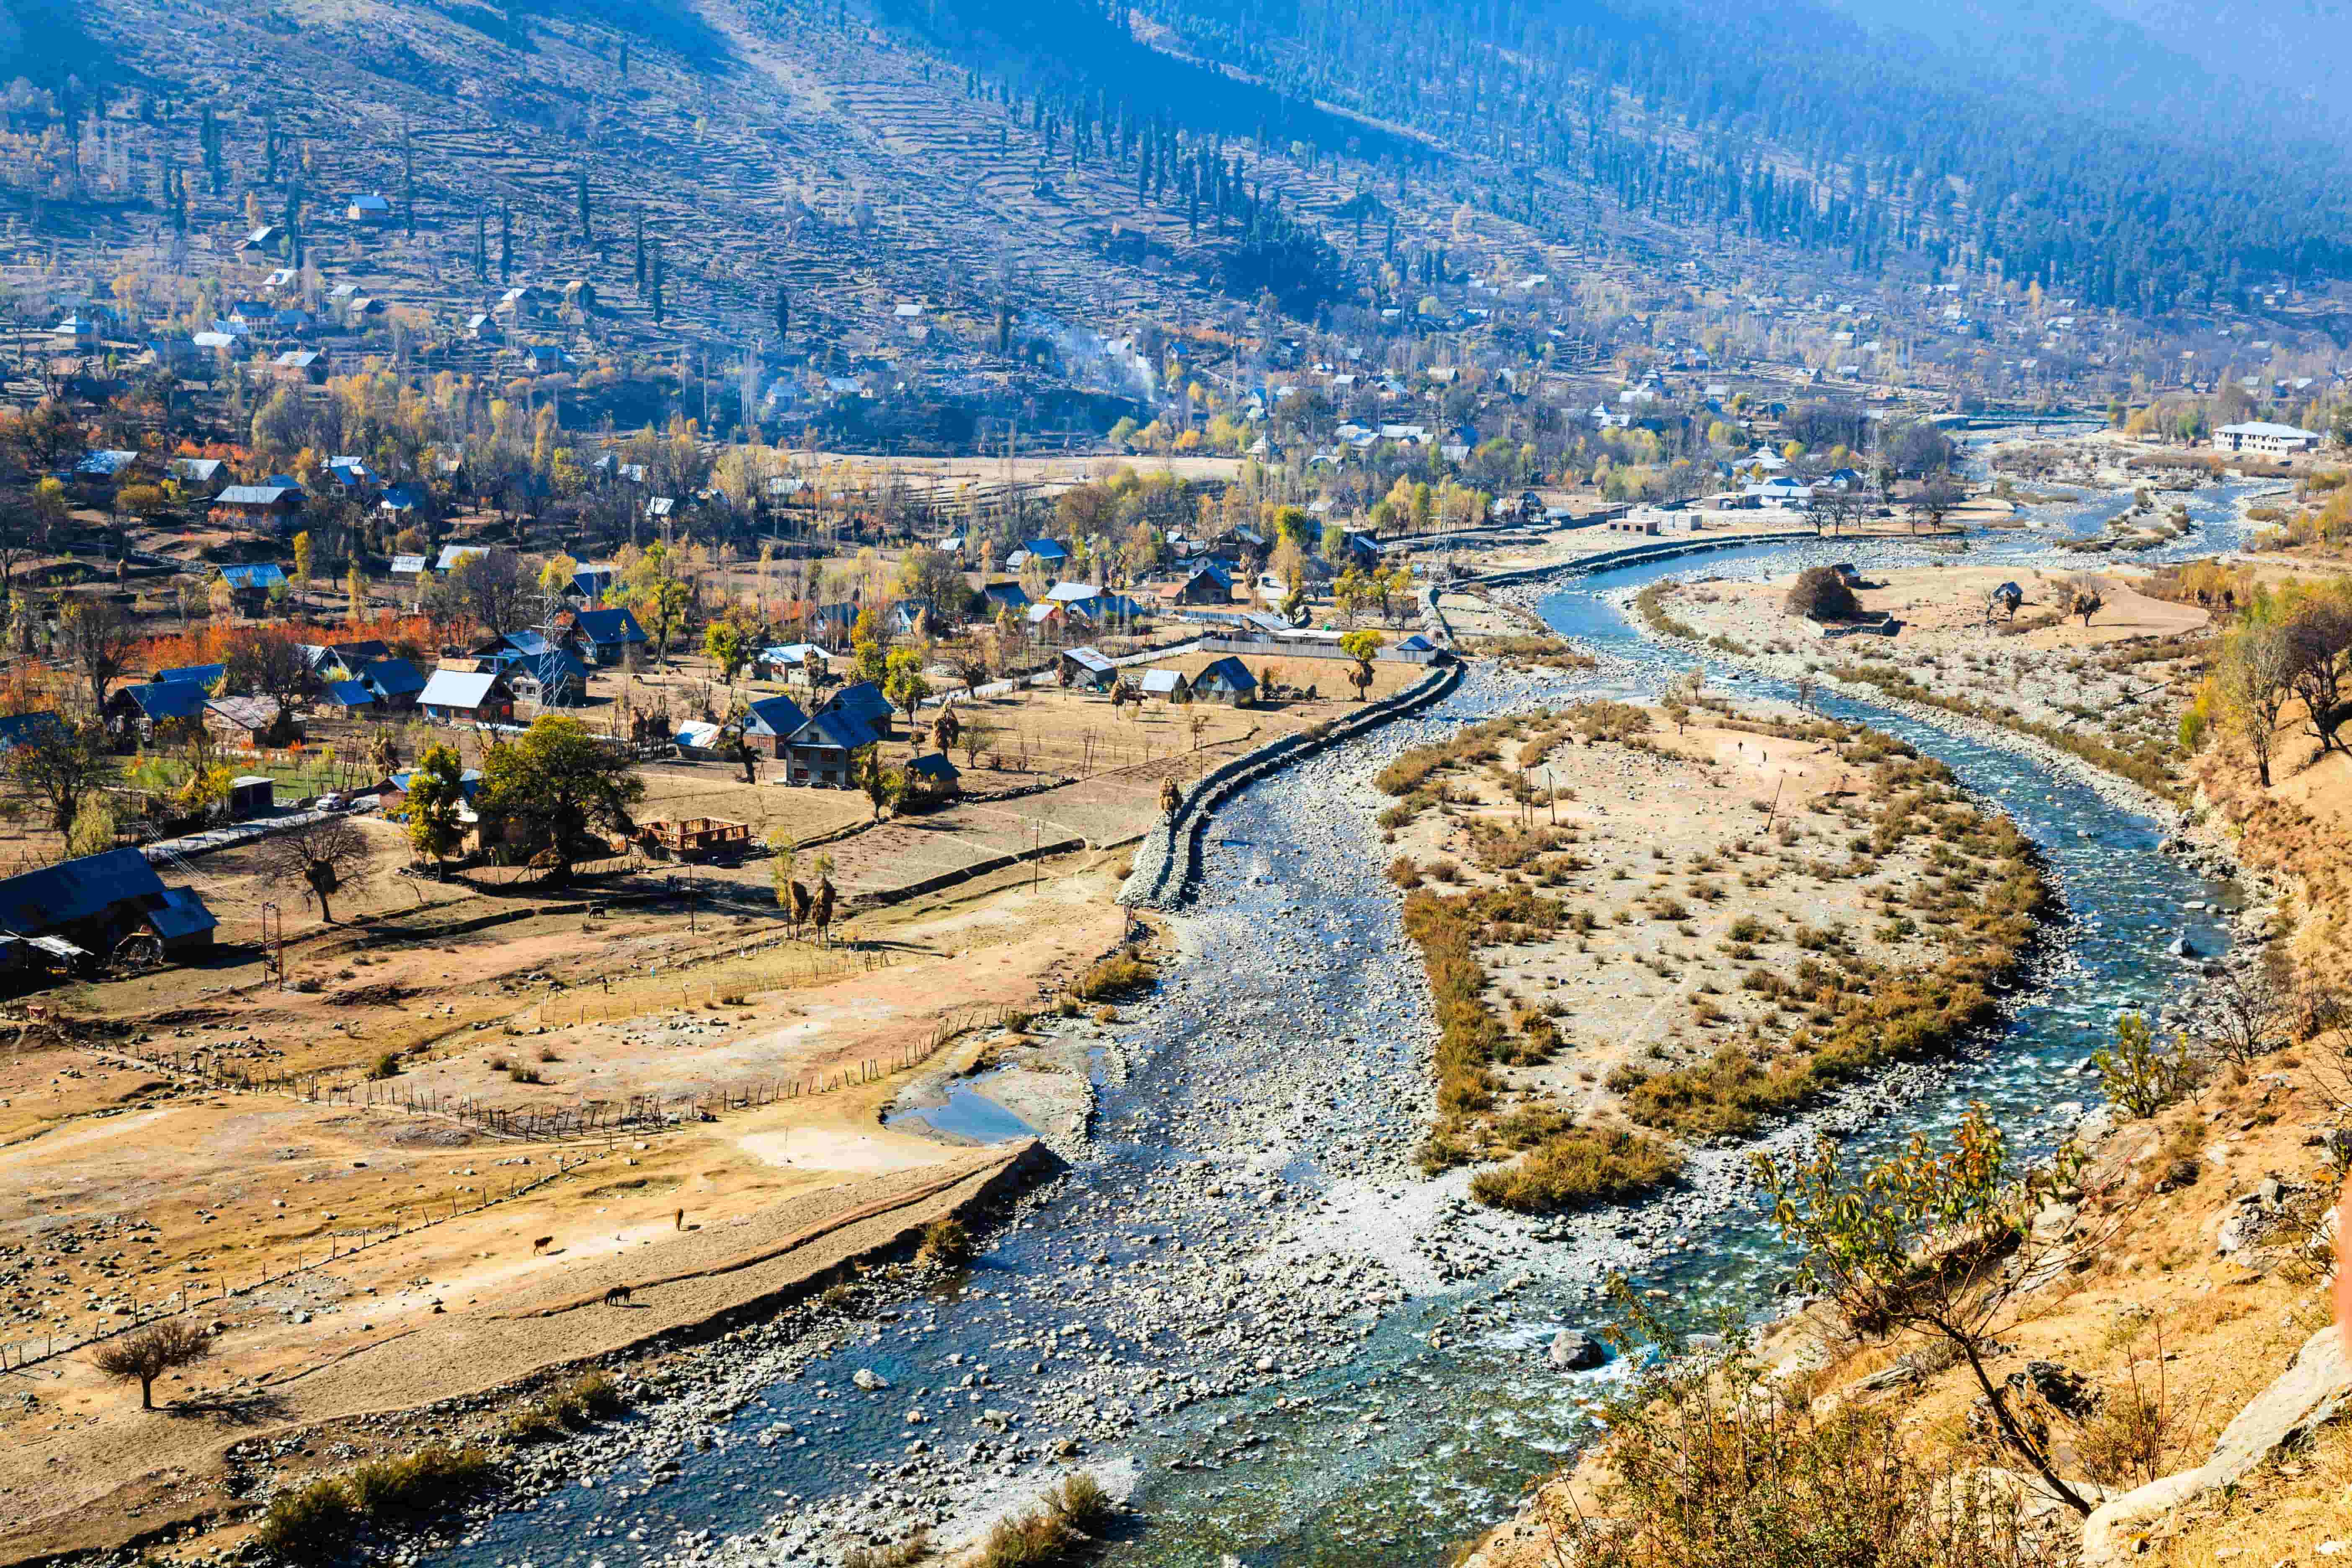 High-angle shot of Sonmarg village